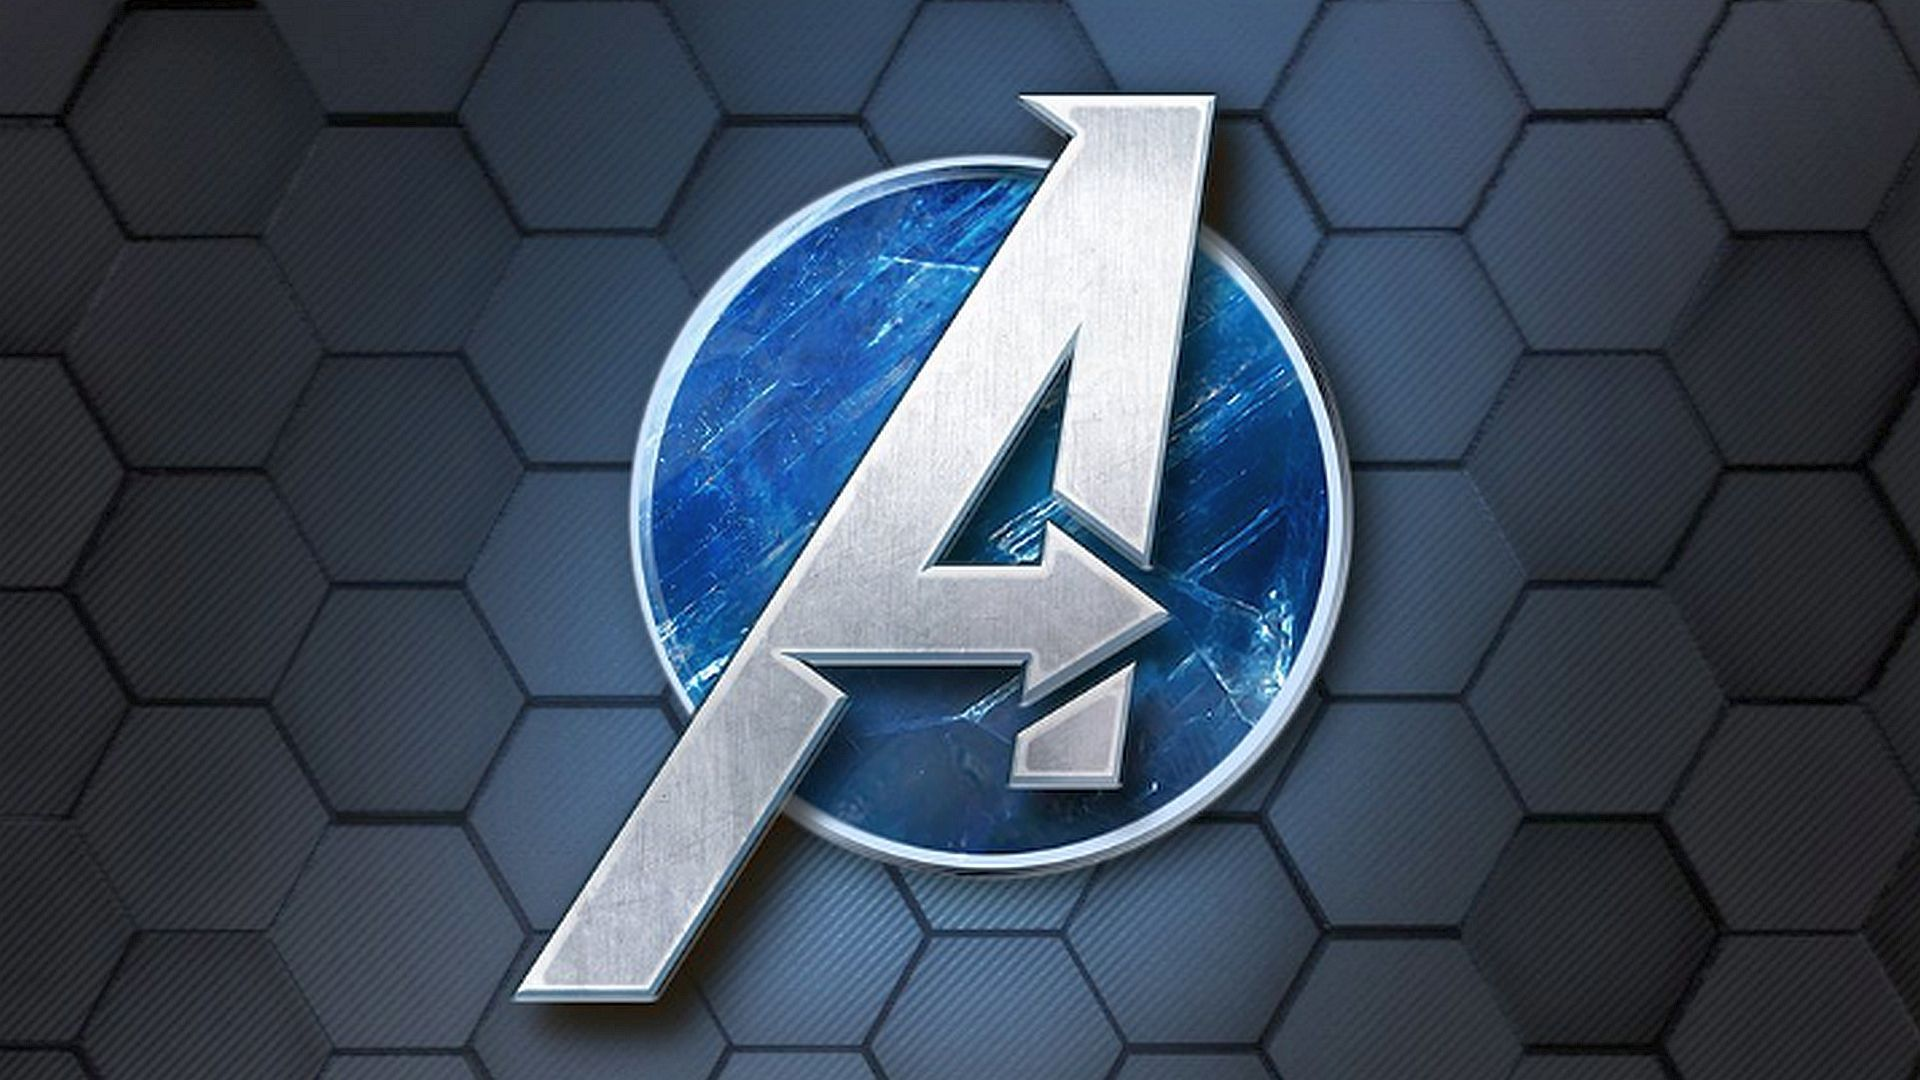 Square Enix S Avengers Game Has Four Player Co Op And Character